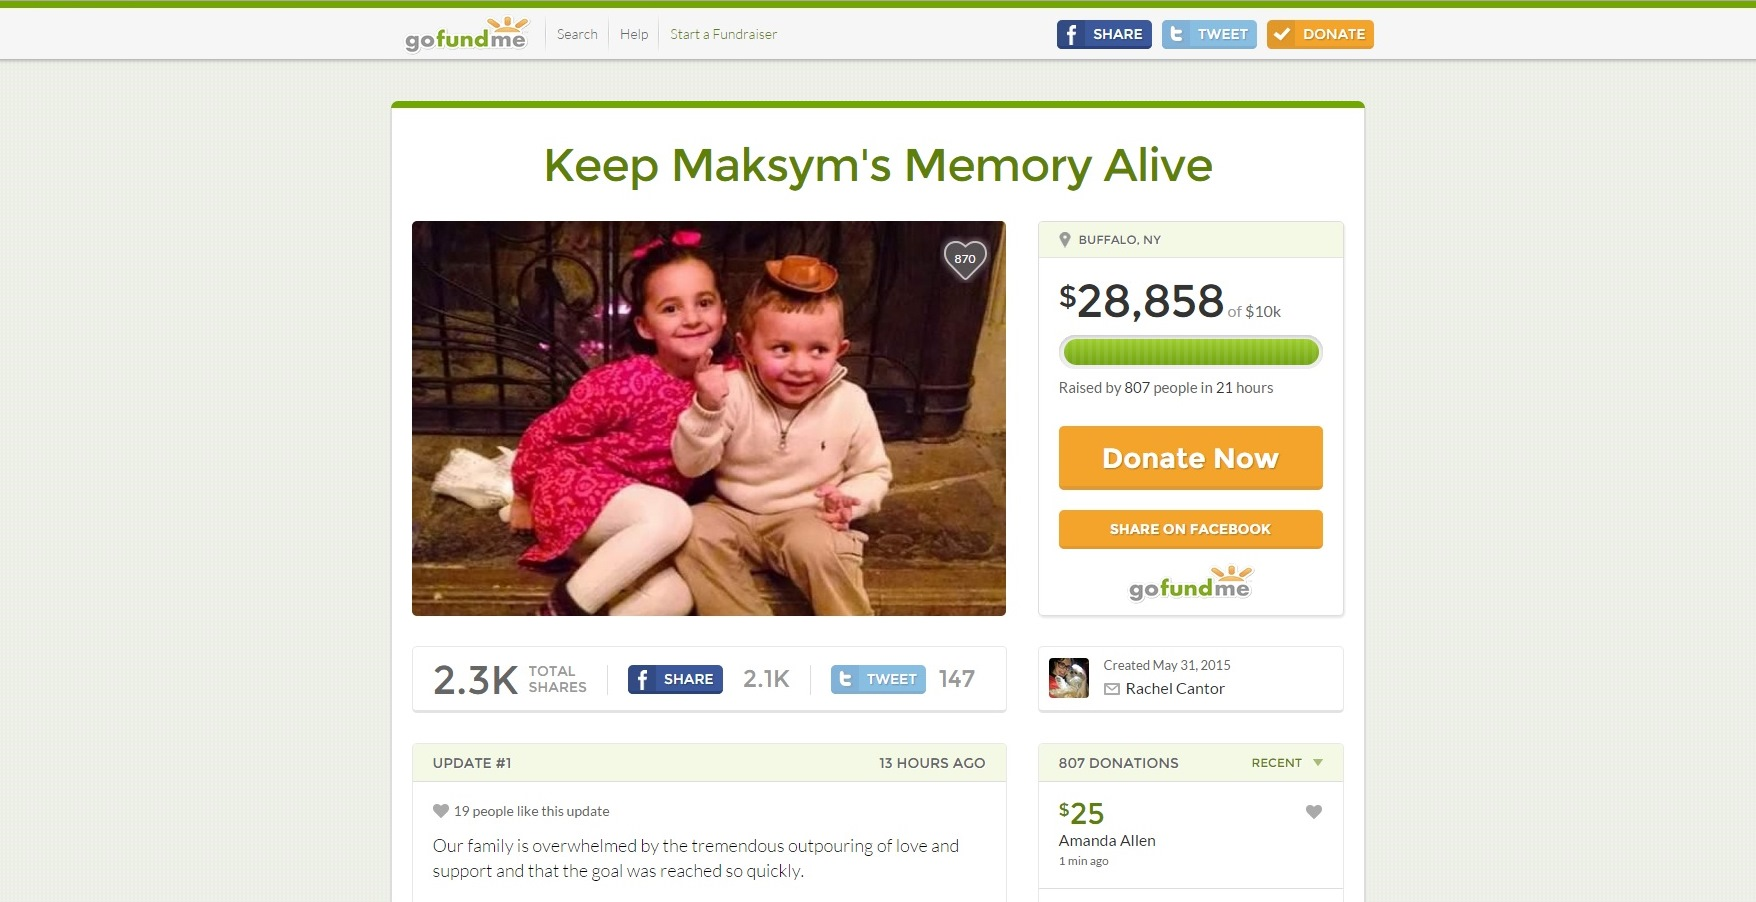 A screen grab of the GoFundMe campaign taken just before 1:30 p.m.